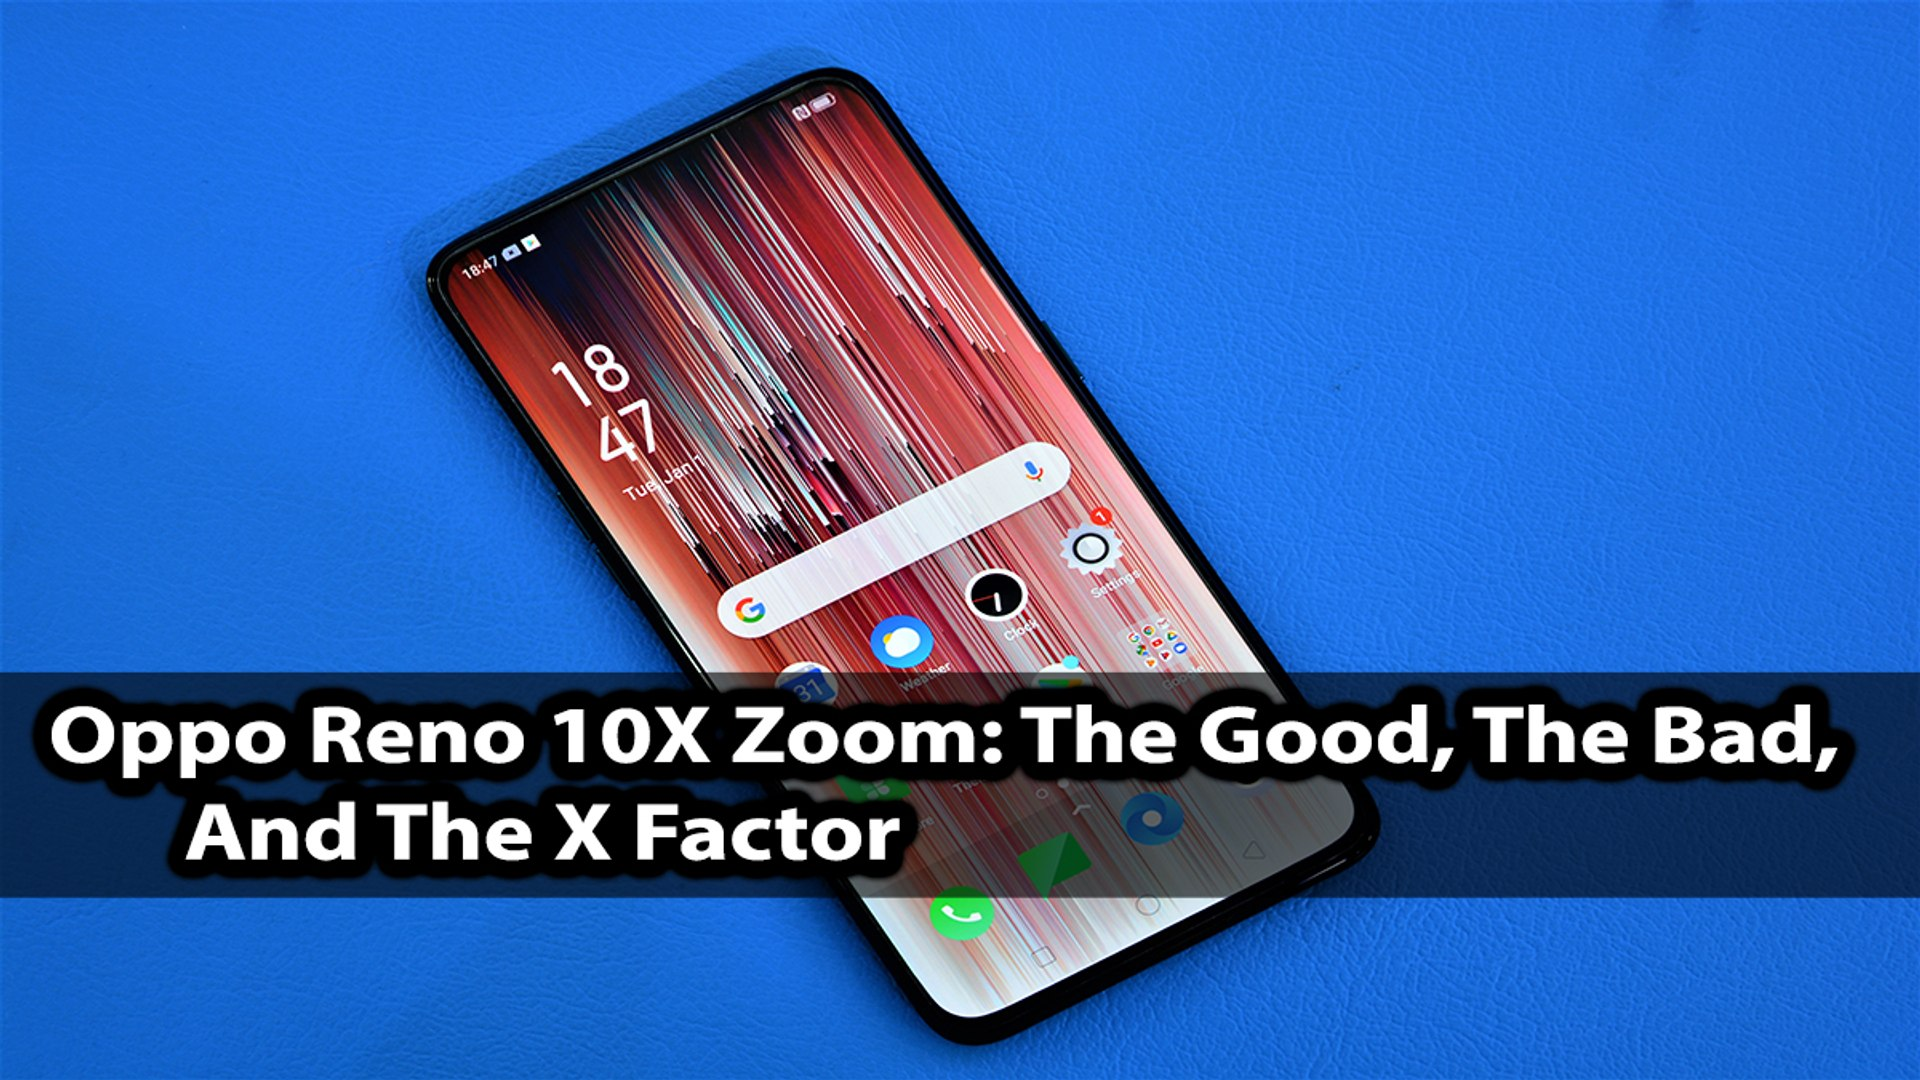 Oppo Reno 10X Zoom: The Good, The Bad, And The X Factor